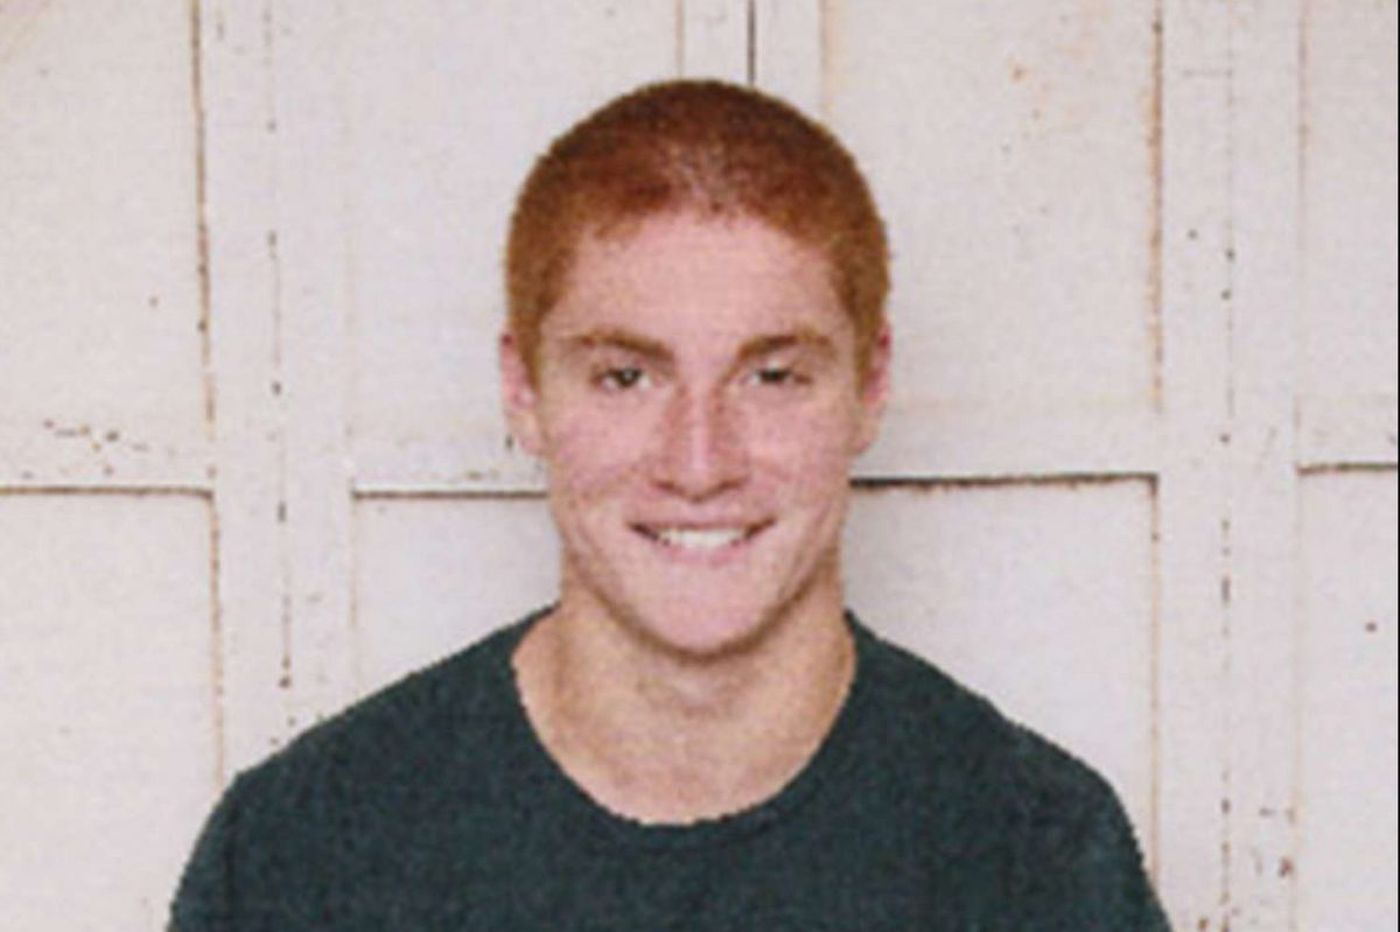 Pa. attorney general to review Penn State frat death